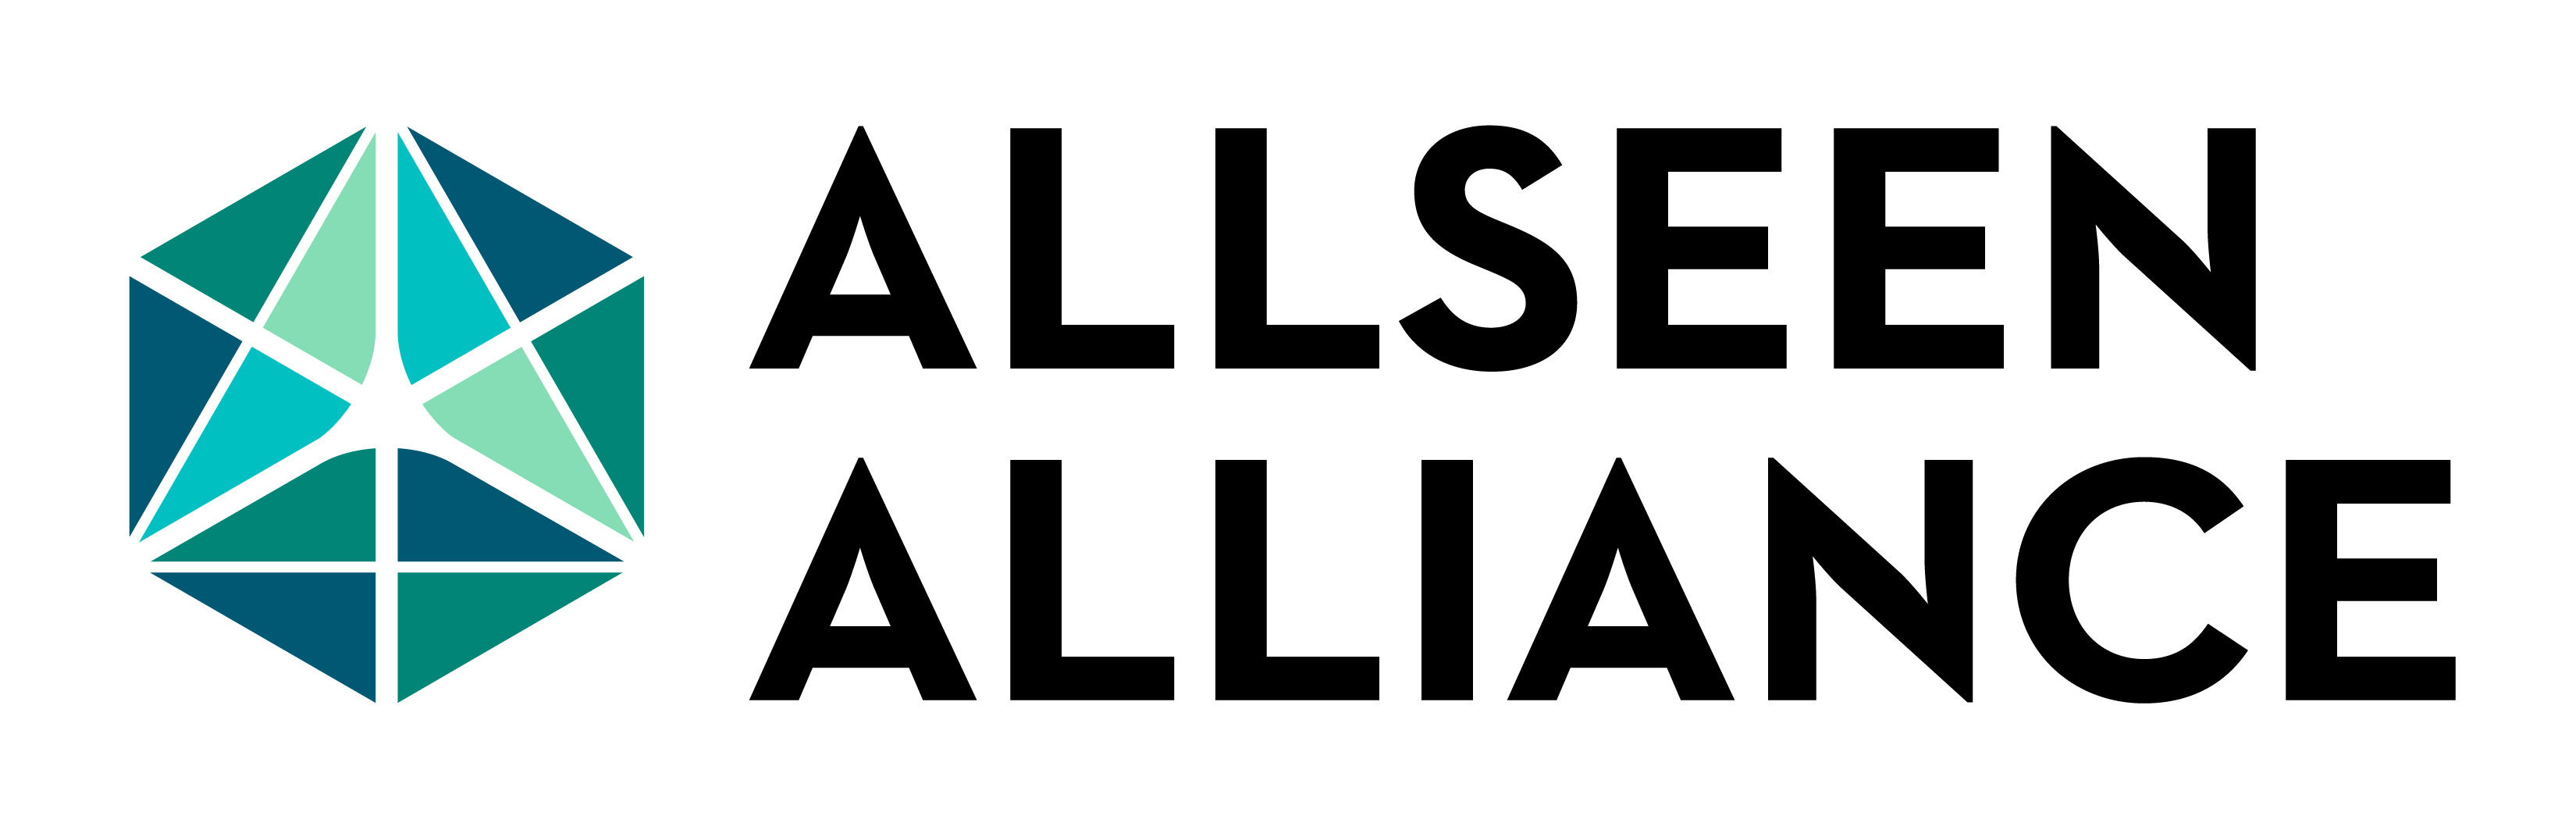 AllSeenAlliance color rgb